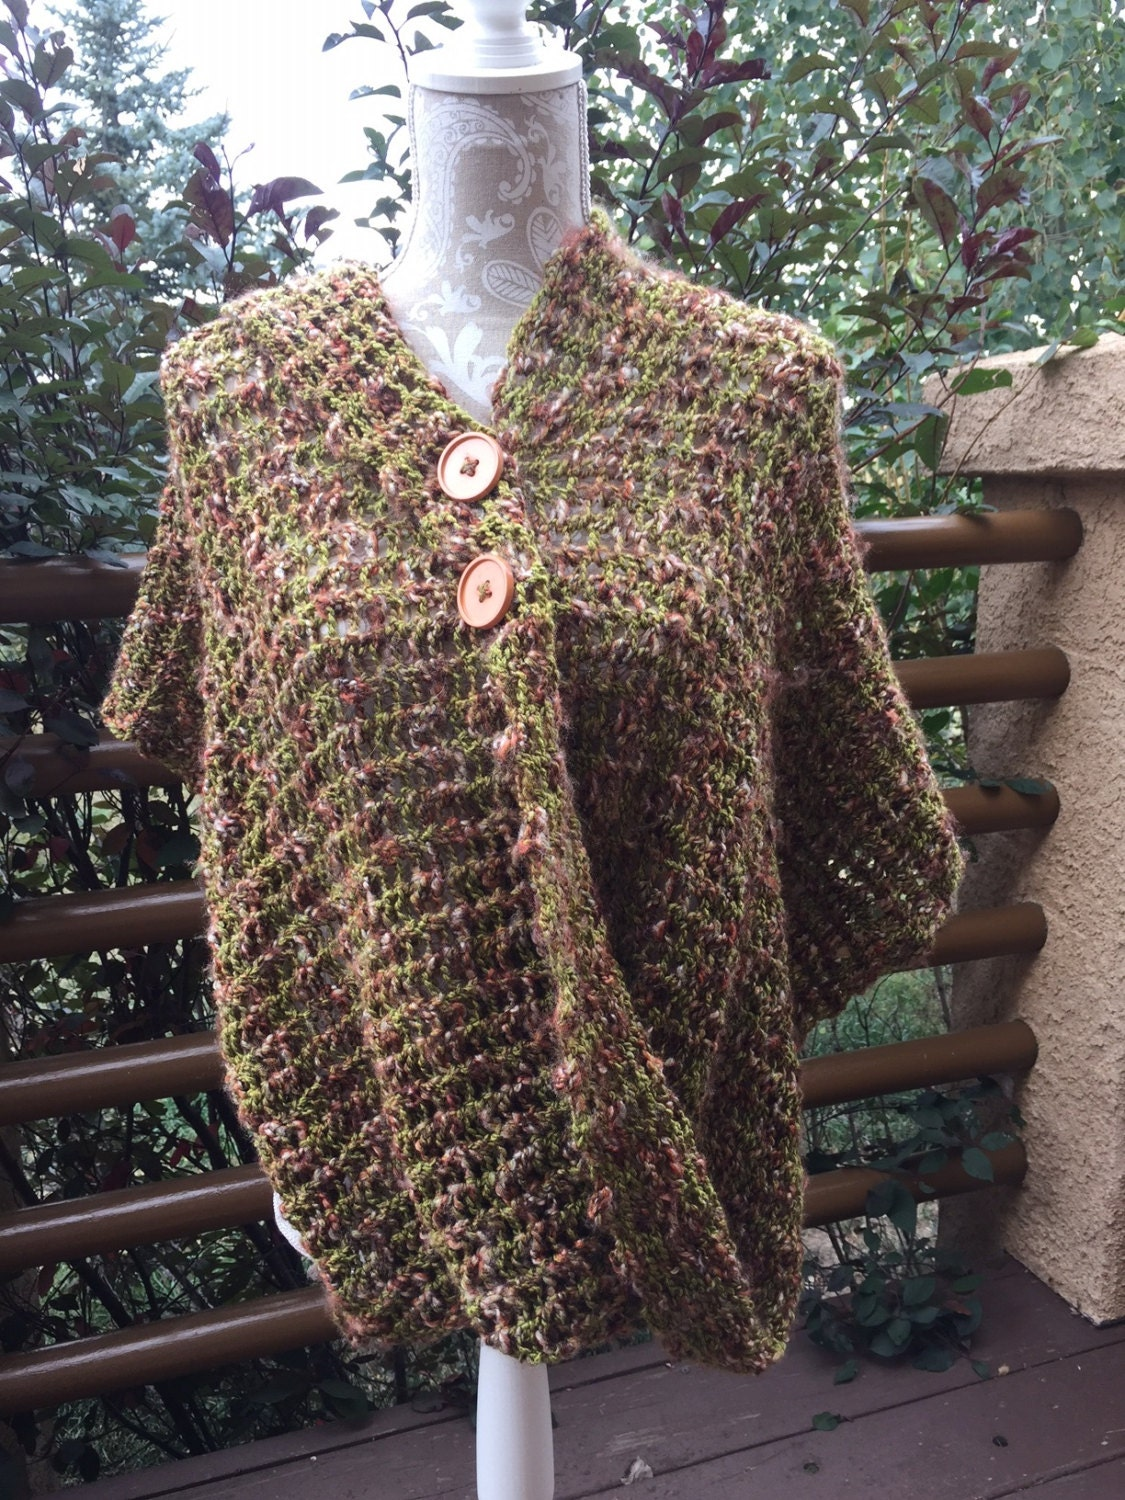 Mobius Wrap - a loom knit pattern from DaynaScolesDesigns on Etsy Studio